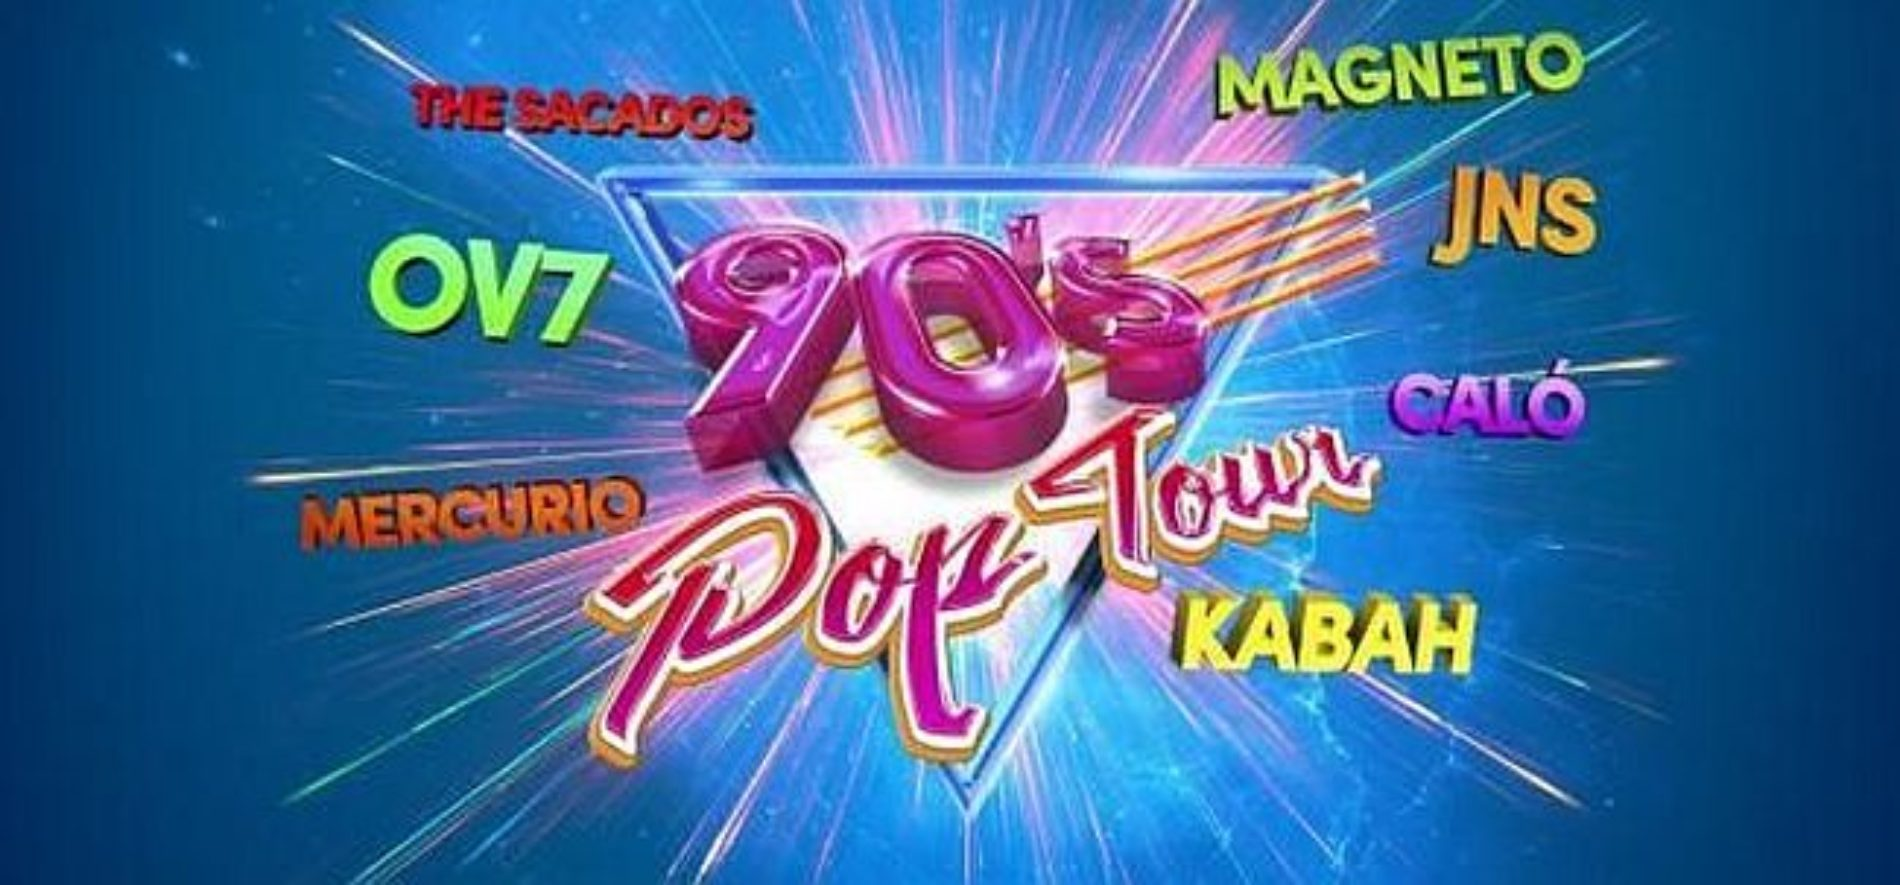 90's Pop Tour en Tijuana 2019